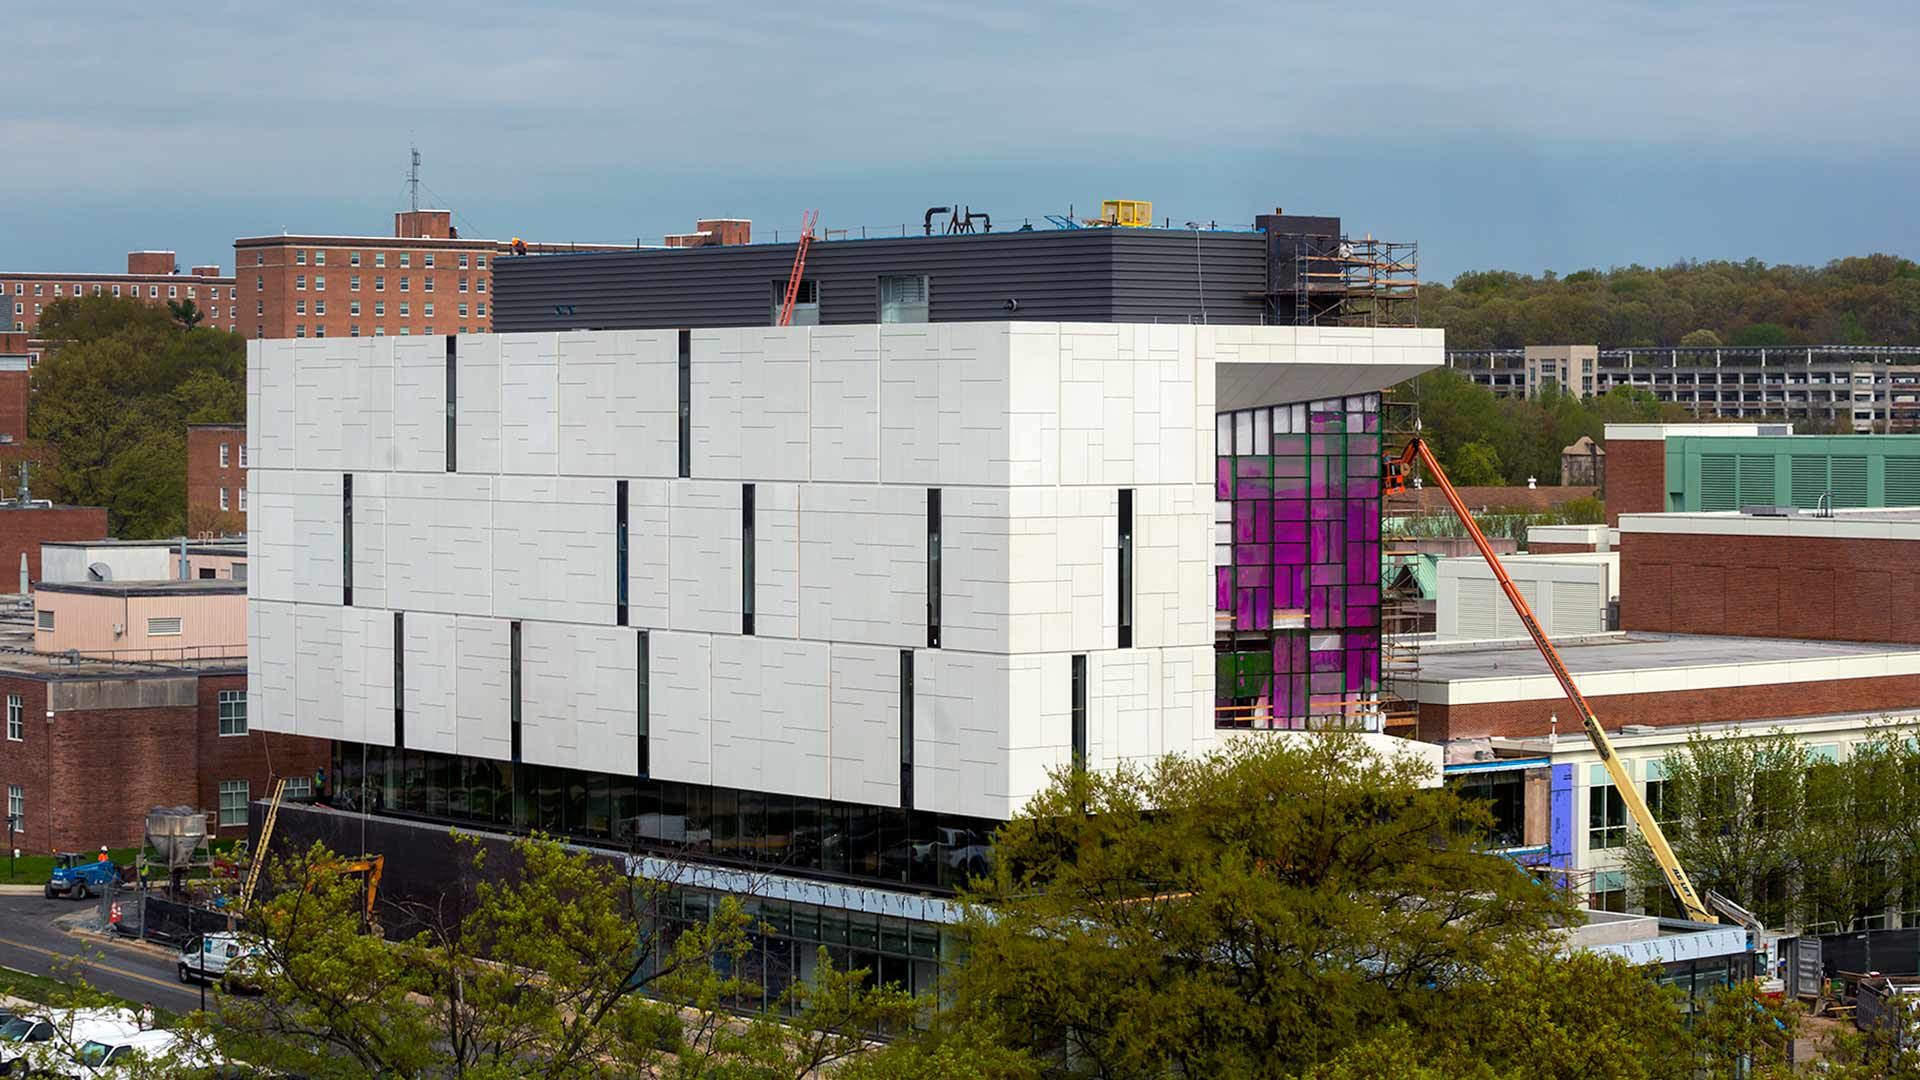 Watch a Behind-the-Fence Tour of the E.A. Fernandez IDEA Factory, Coming Soon to Campus